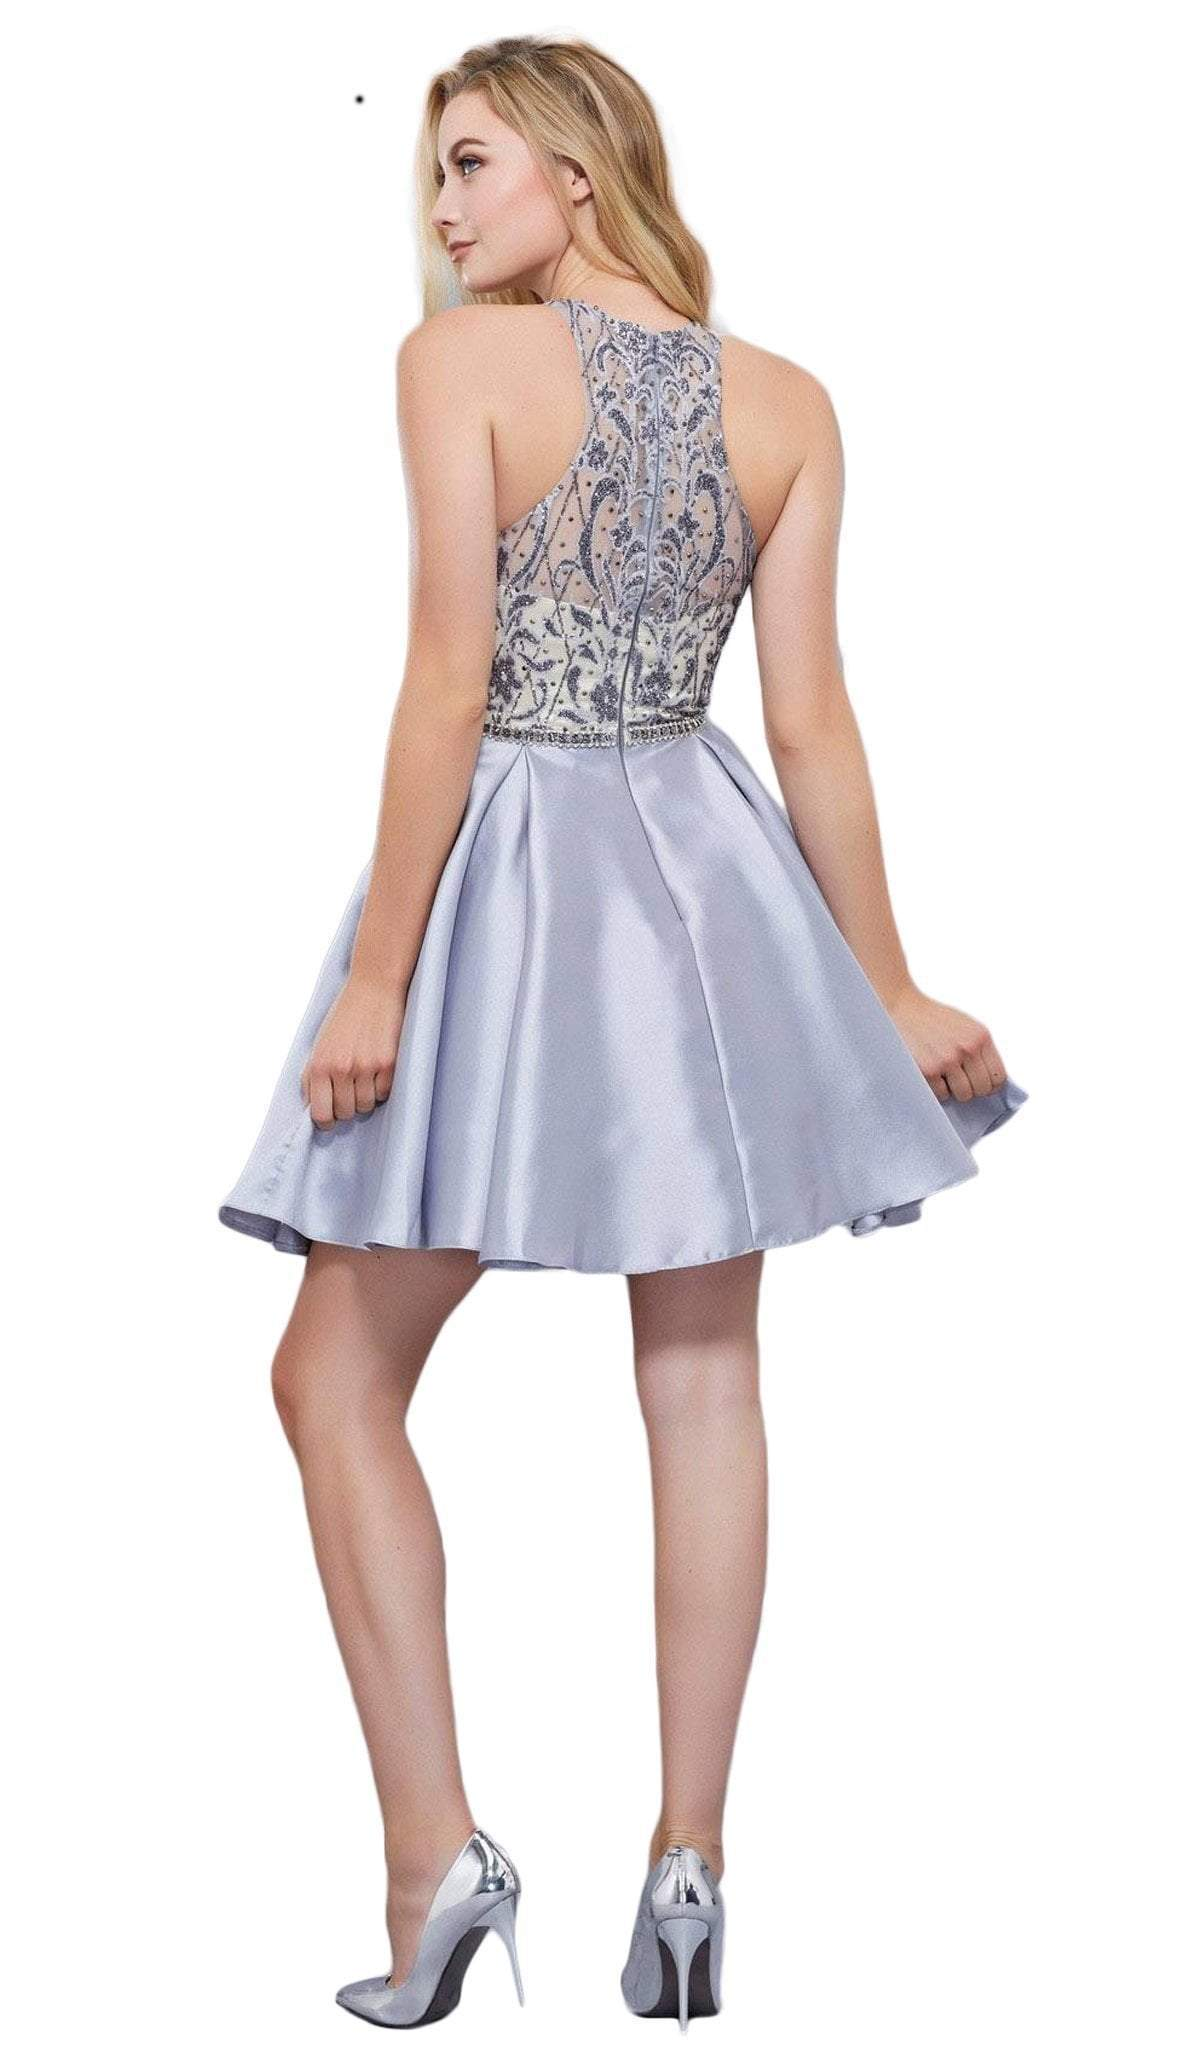 Nox Anabel - Embellished Illusion Halter A-line Dress 6328SC